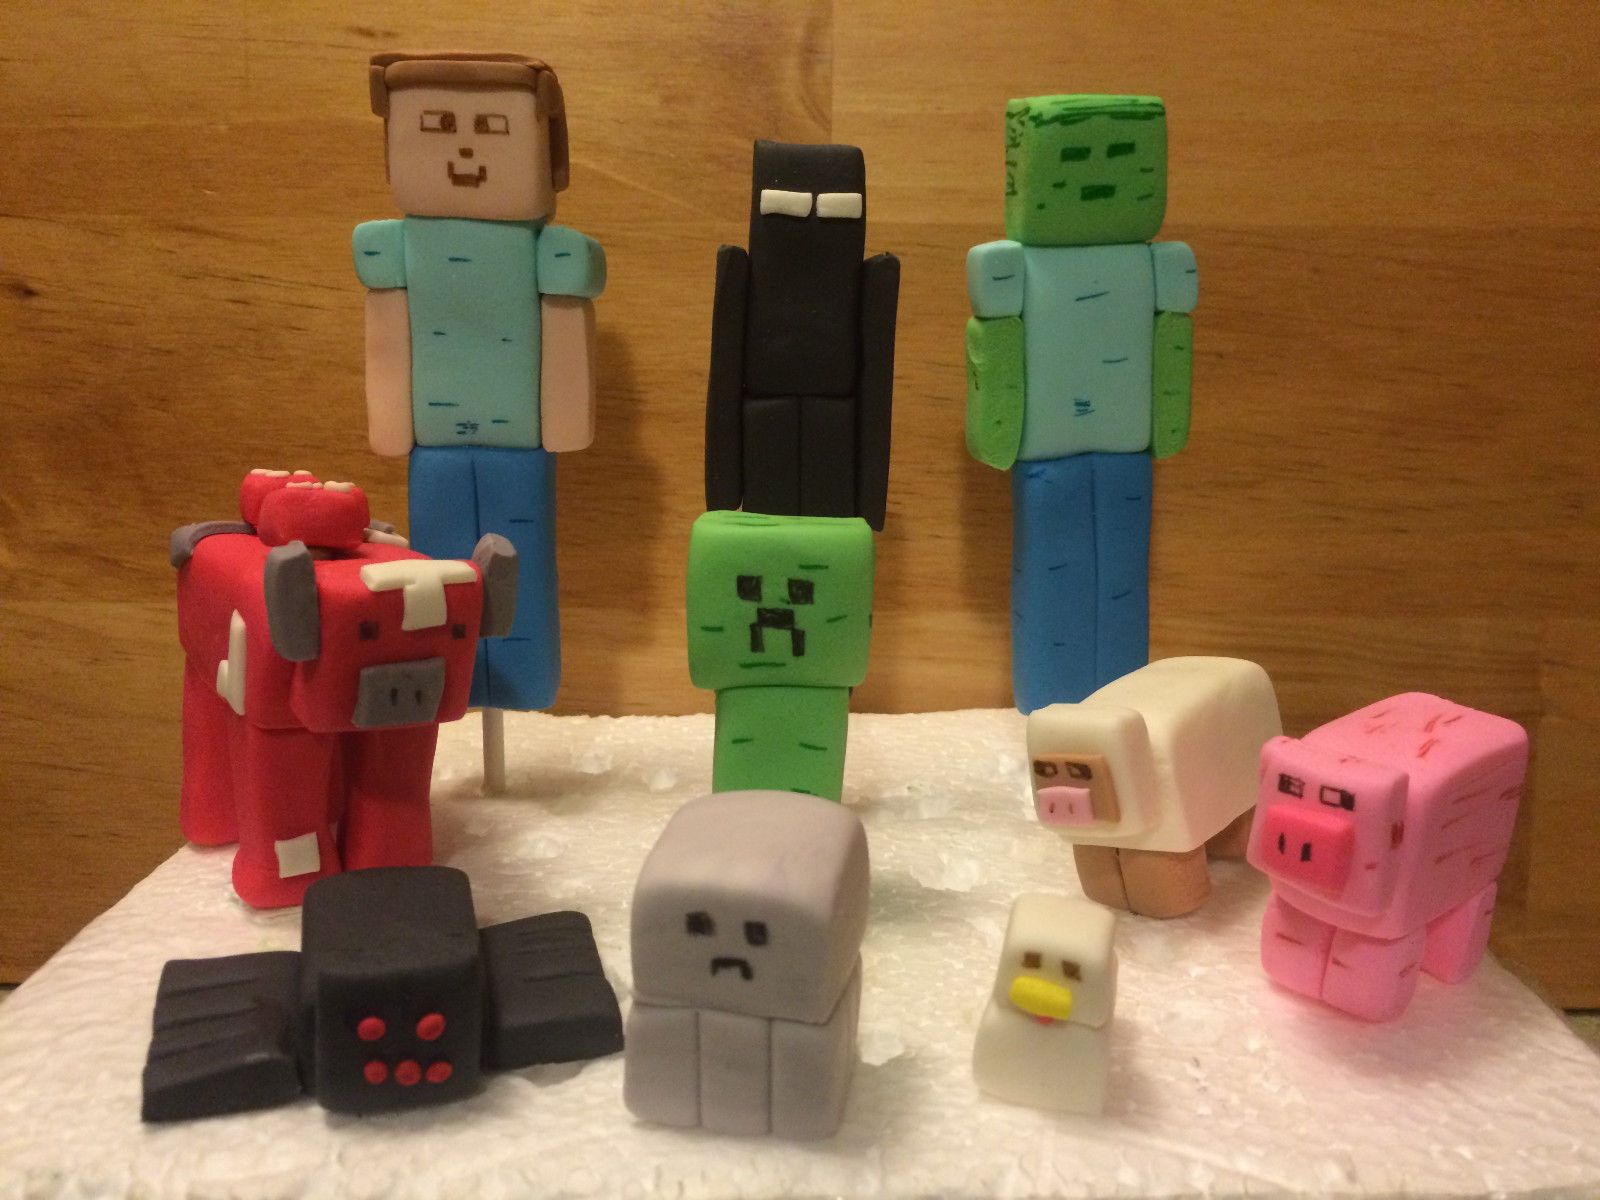 Cake Toppers Minecraft Uk : 5 Custom Edible Fondant Minecraft Figures Cake Toppers ...